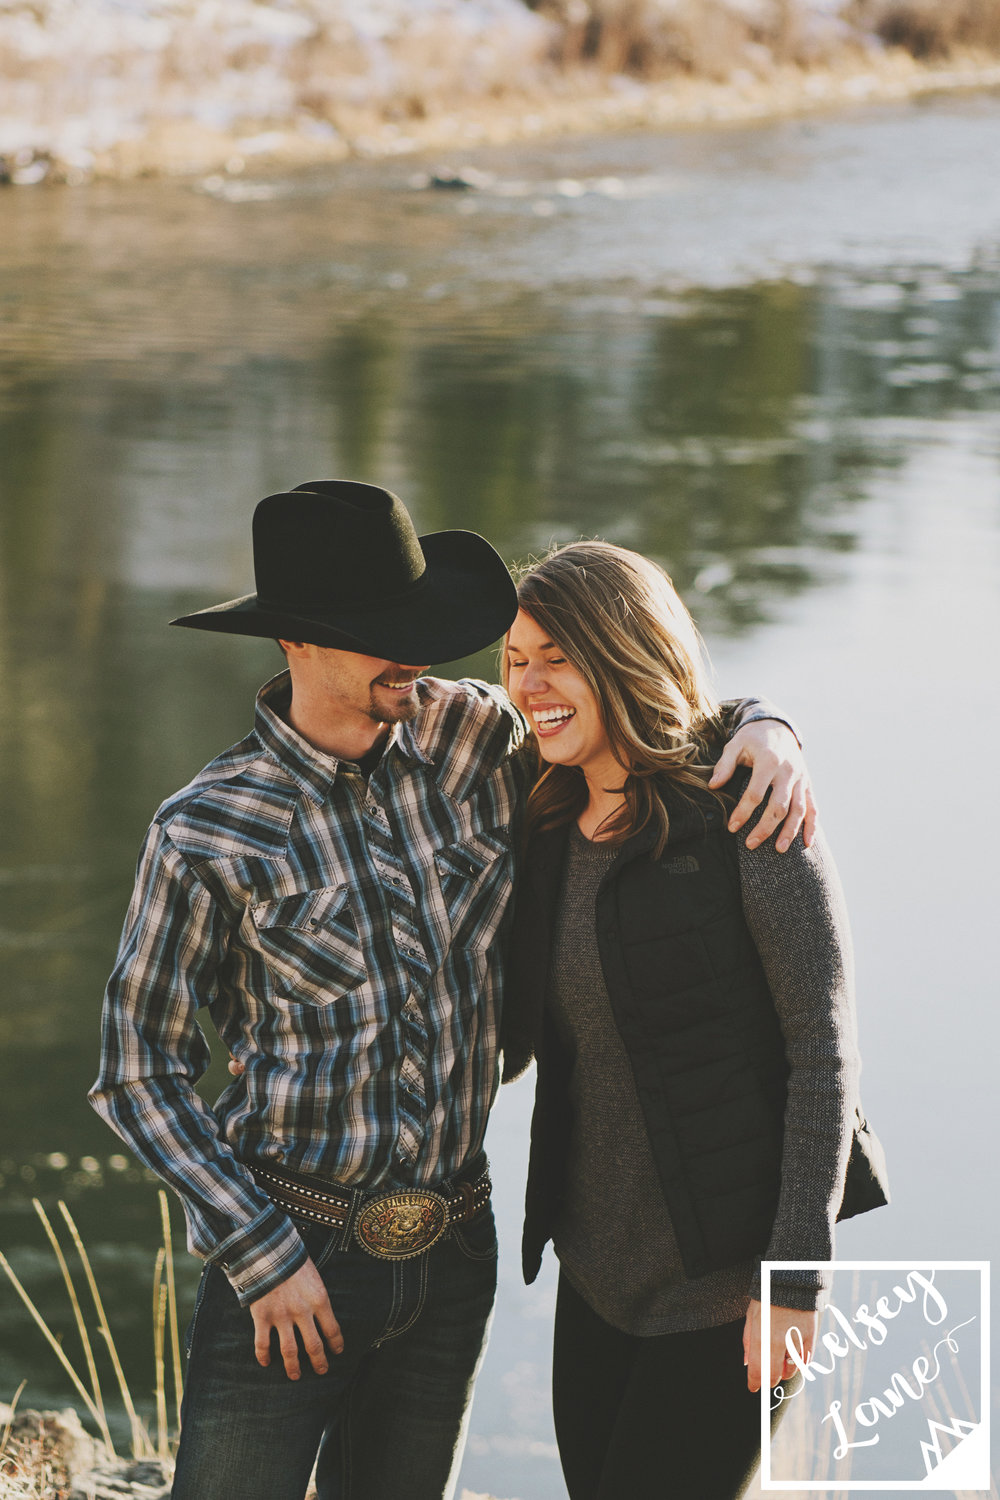 022 Montana River Engagement_Montana Wedding Photographer_Montana Engagement_Helena Engagement_Kelsey Lane Photography_Katlyn Kenyon + Jade Nystrom Engagement-9701.jpg